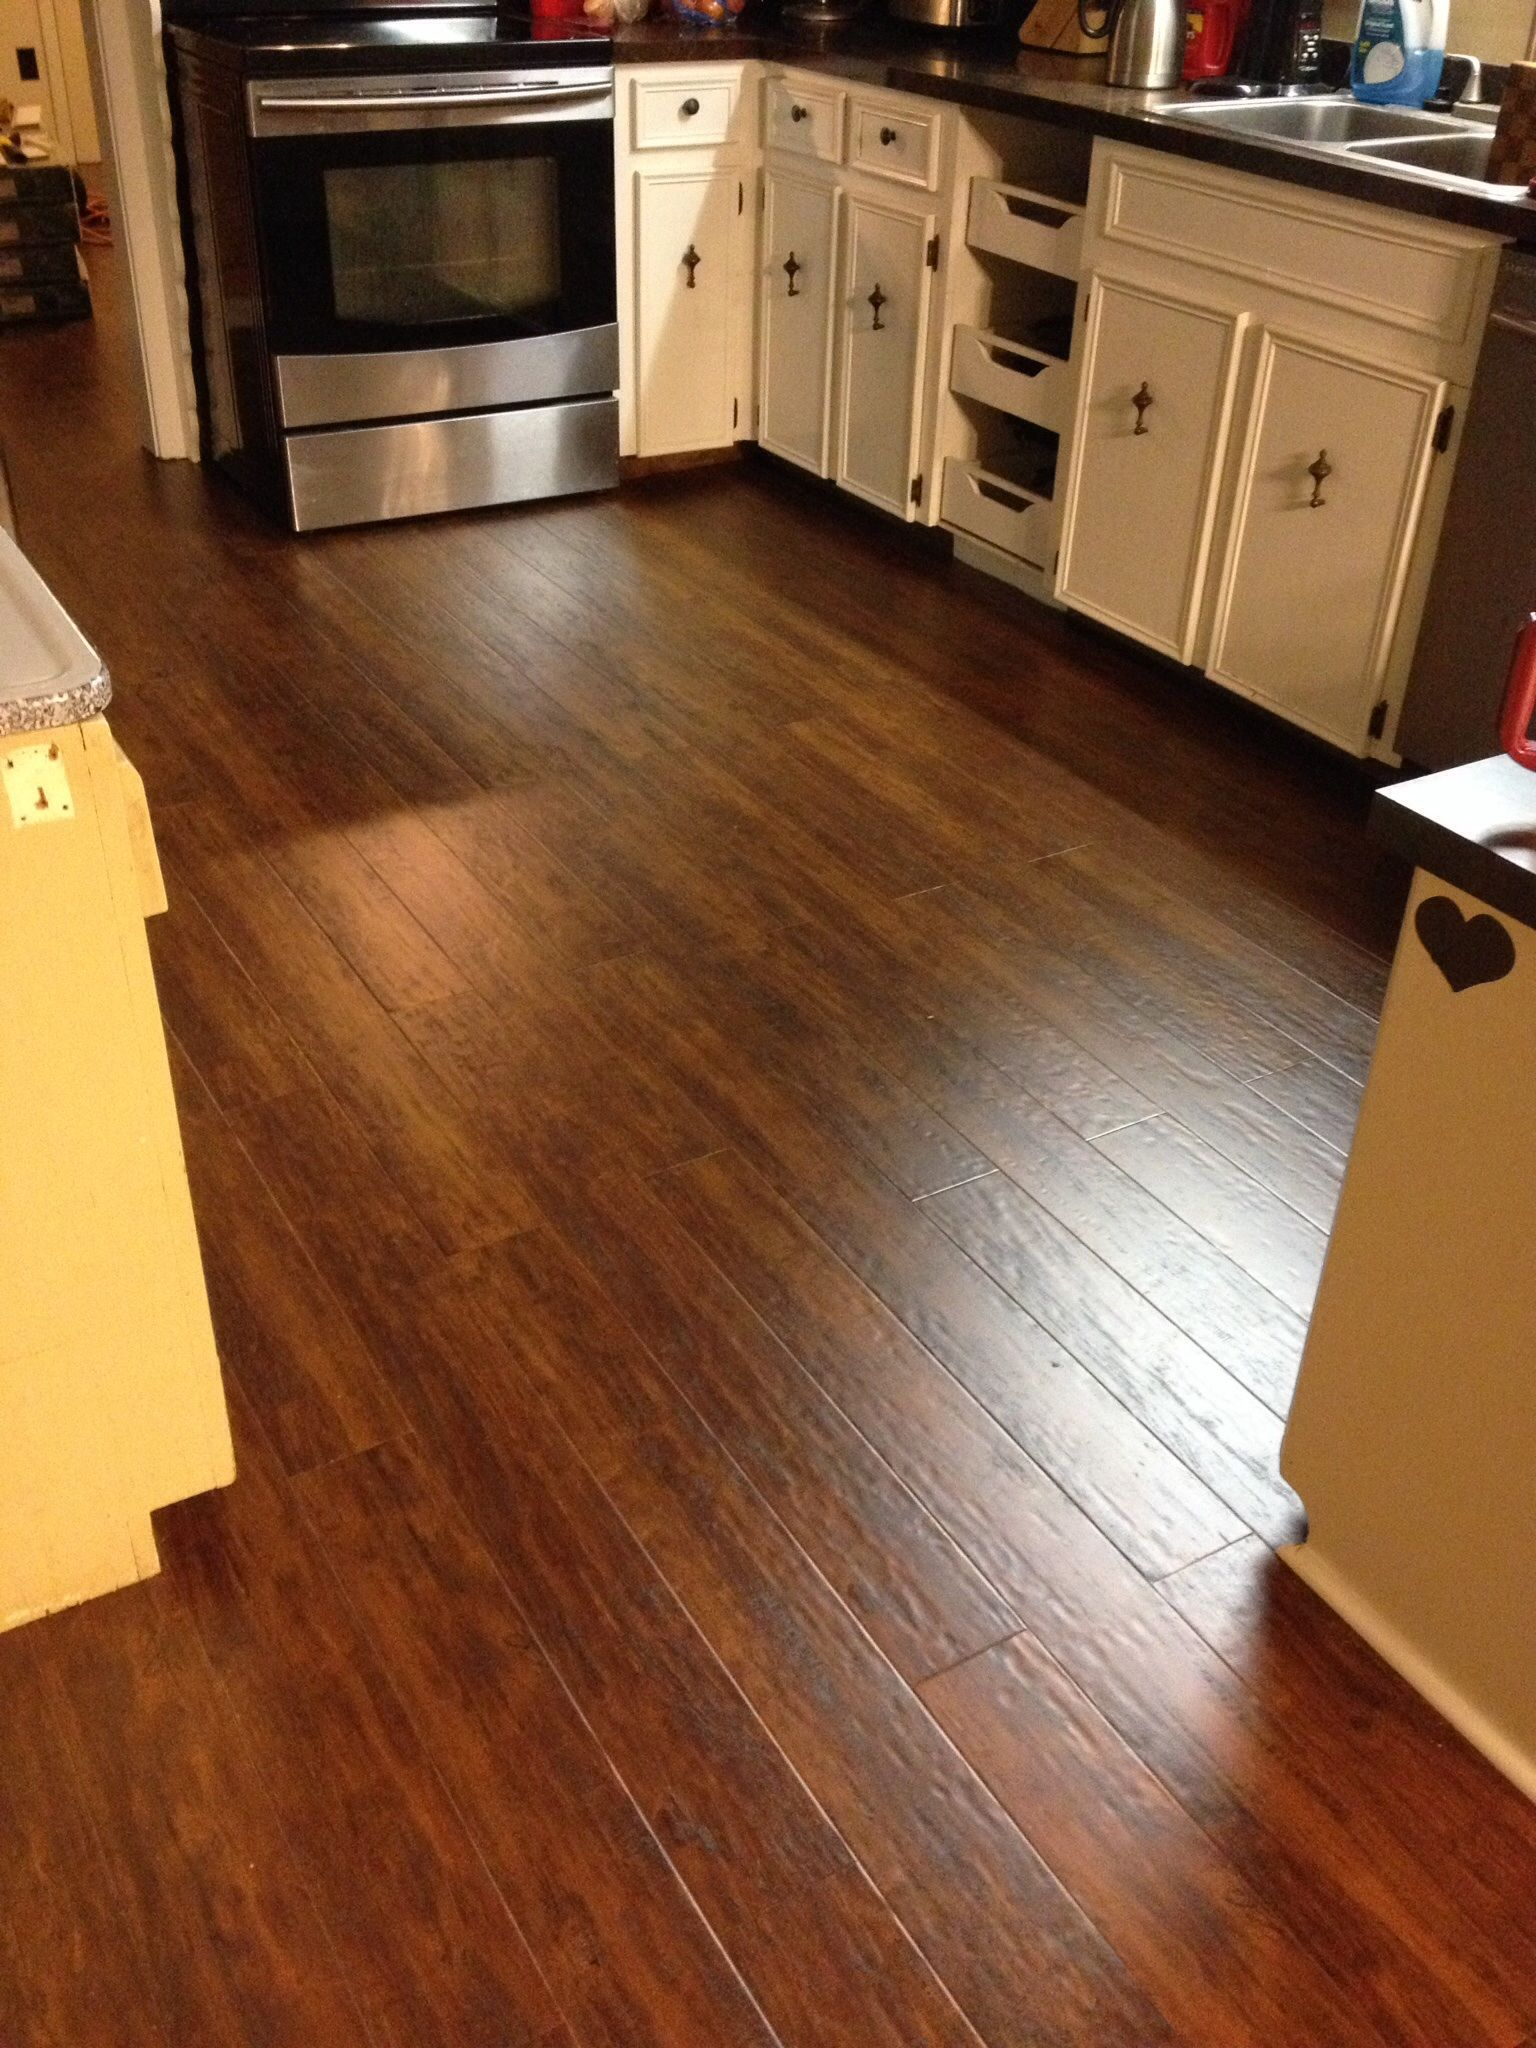 Home Floor And Kitchens Warm Springs Chestnut Laminate Brings Life To The Kitchen